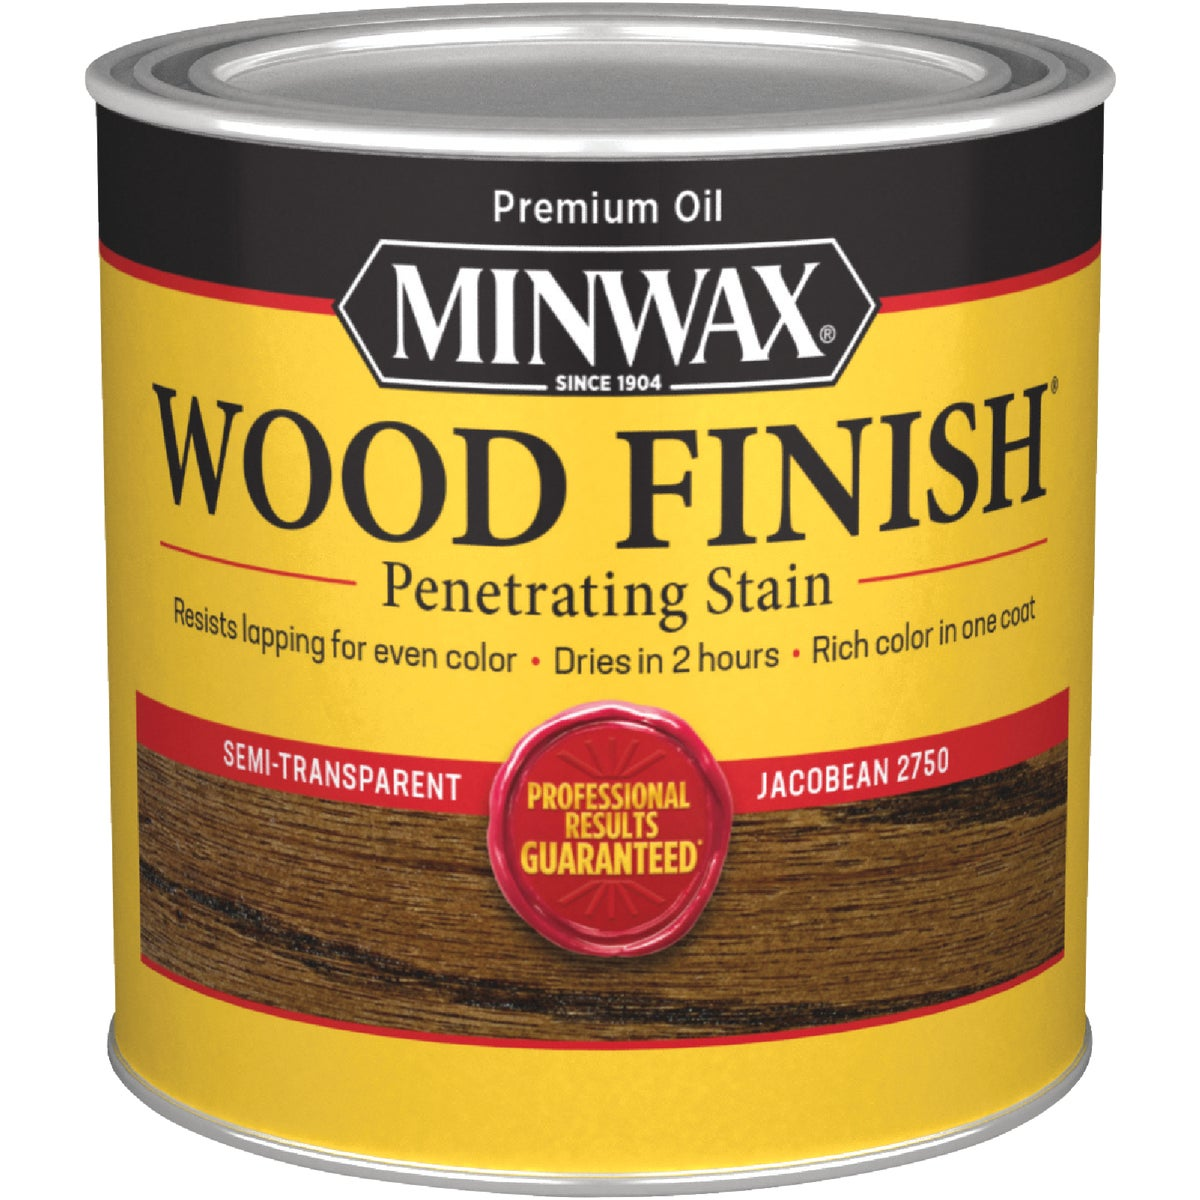 JACOBEAN WOOD STAIN - 227504444 by Minwax Company